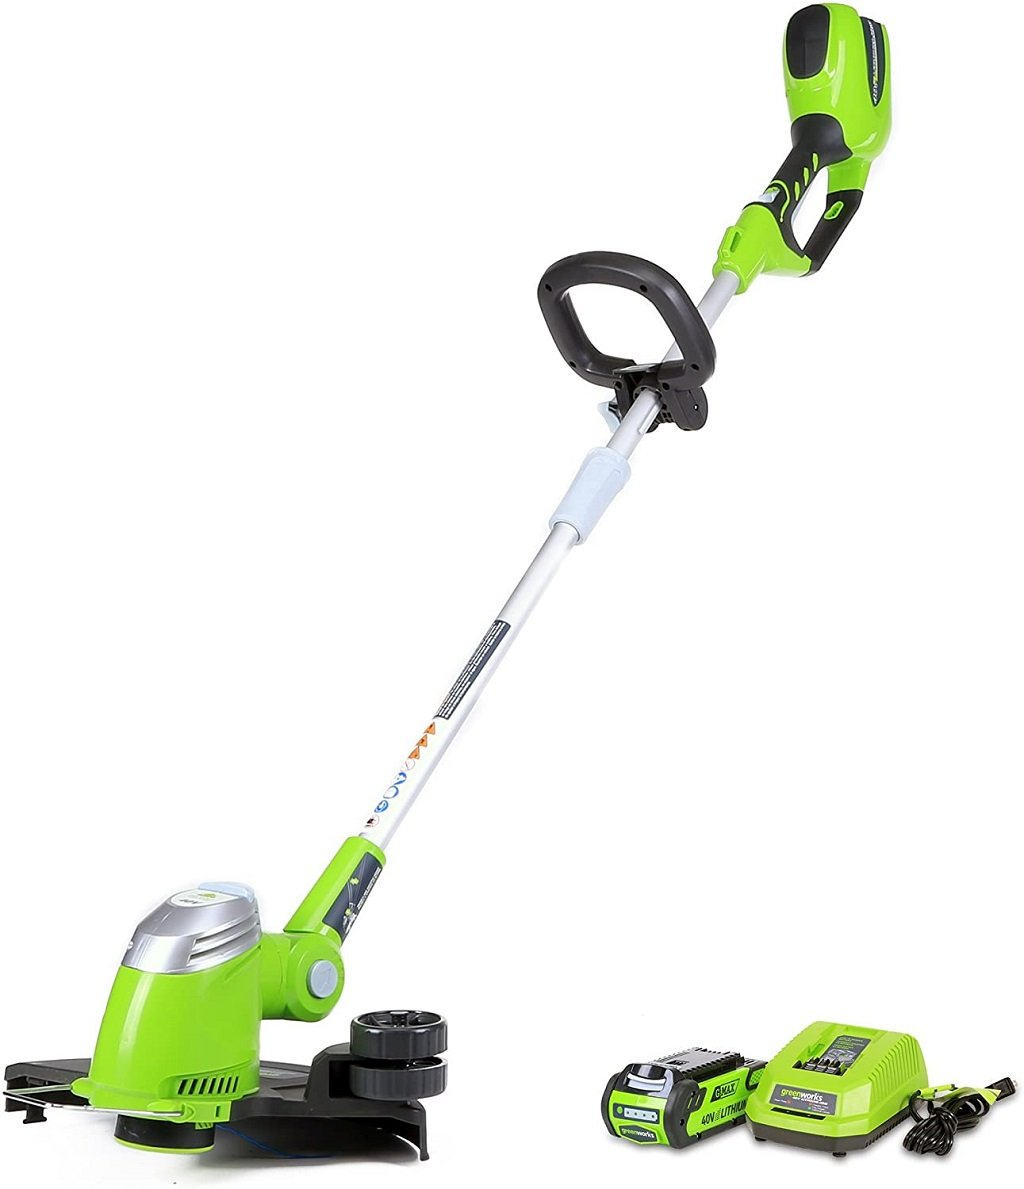 Greenworks 21302 Cordless String Trimmer and Edger